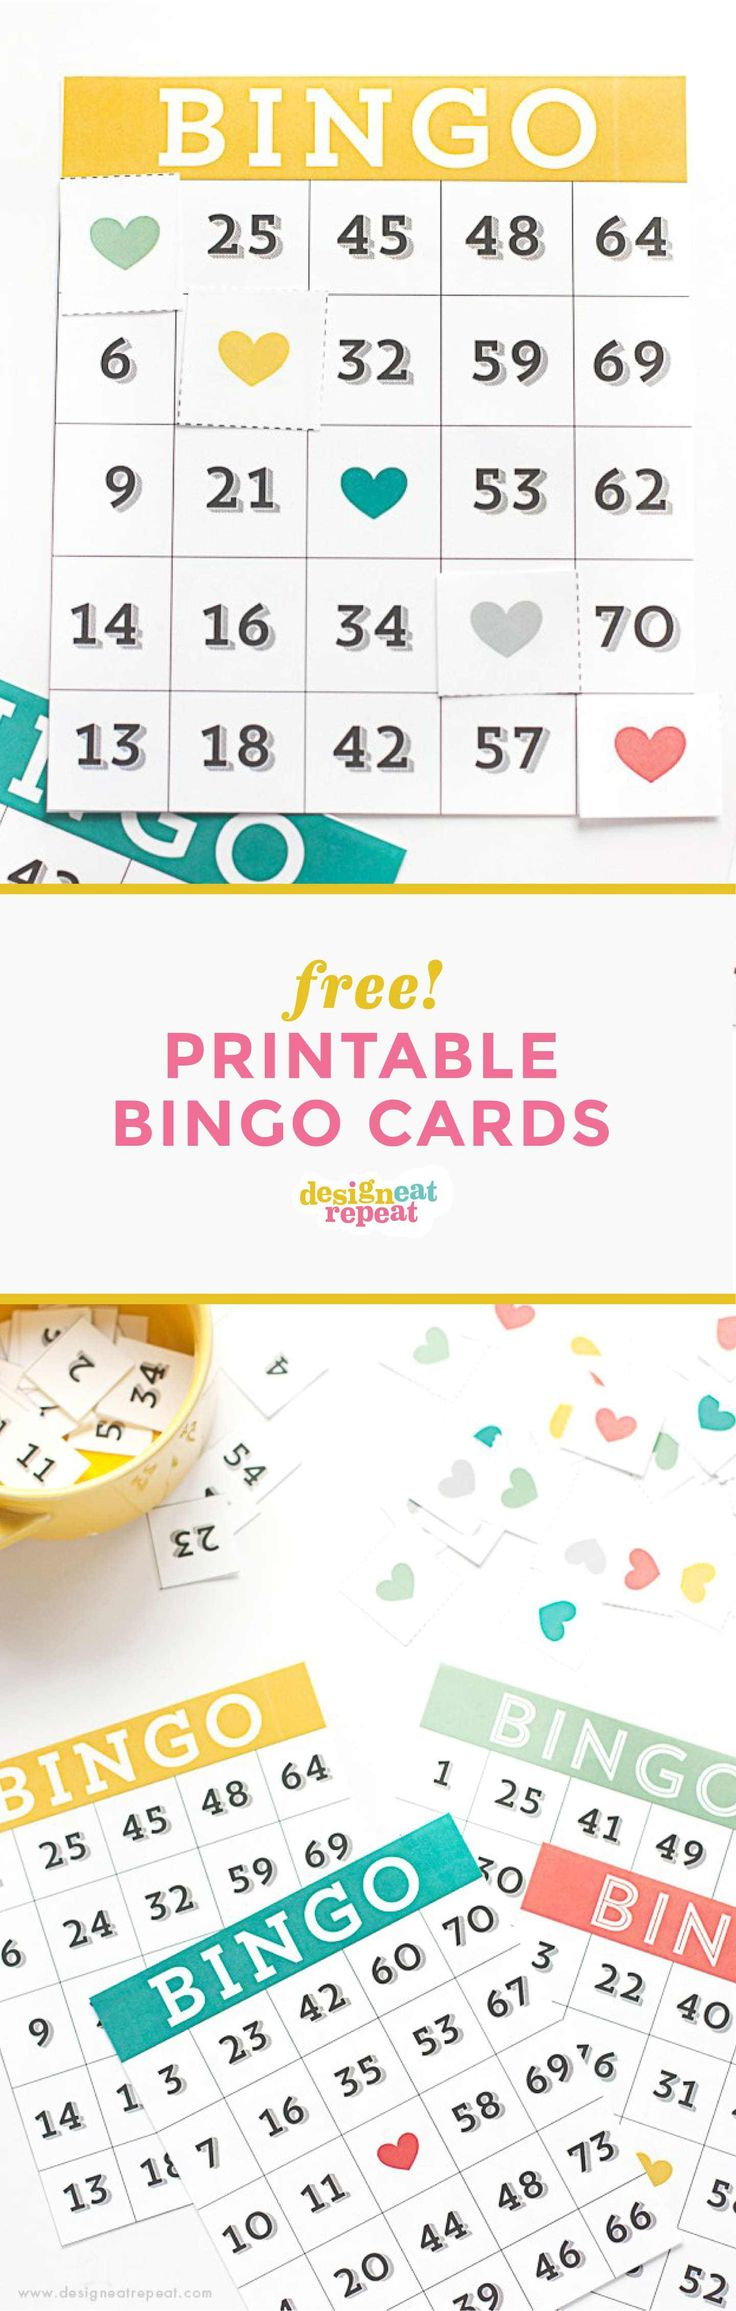 Free Printable Bingo Cards comes with four different cards, heart squares to mark your spots, and pieces numbered from 1-75 that you can place in a bowl to draw from. I also included a sheet of blank cards in the printable, in case you have more players! Simply, write in random numbers in each square for a little handmade card.